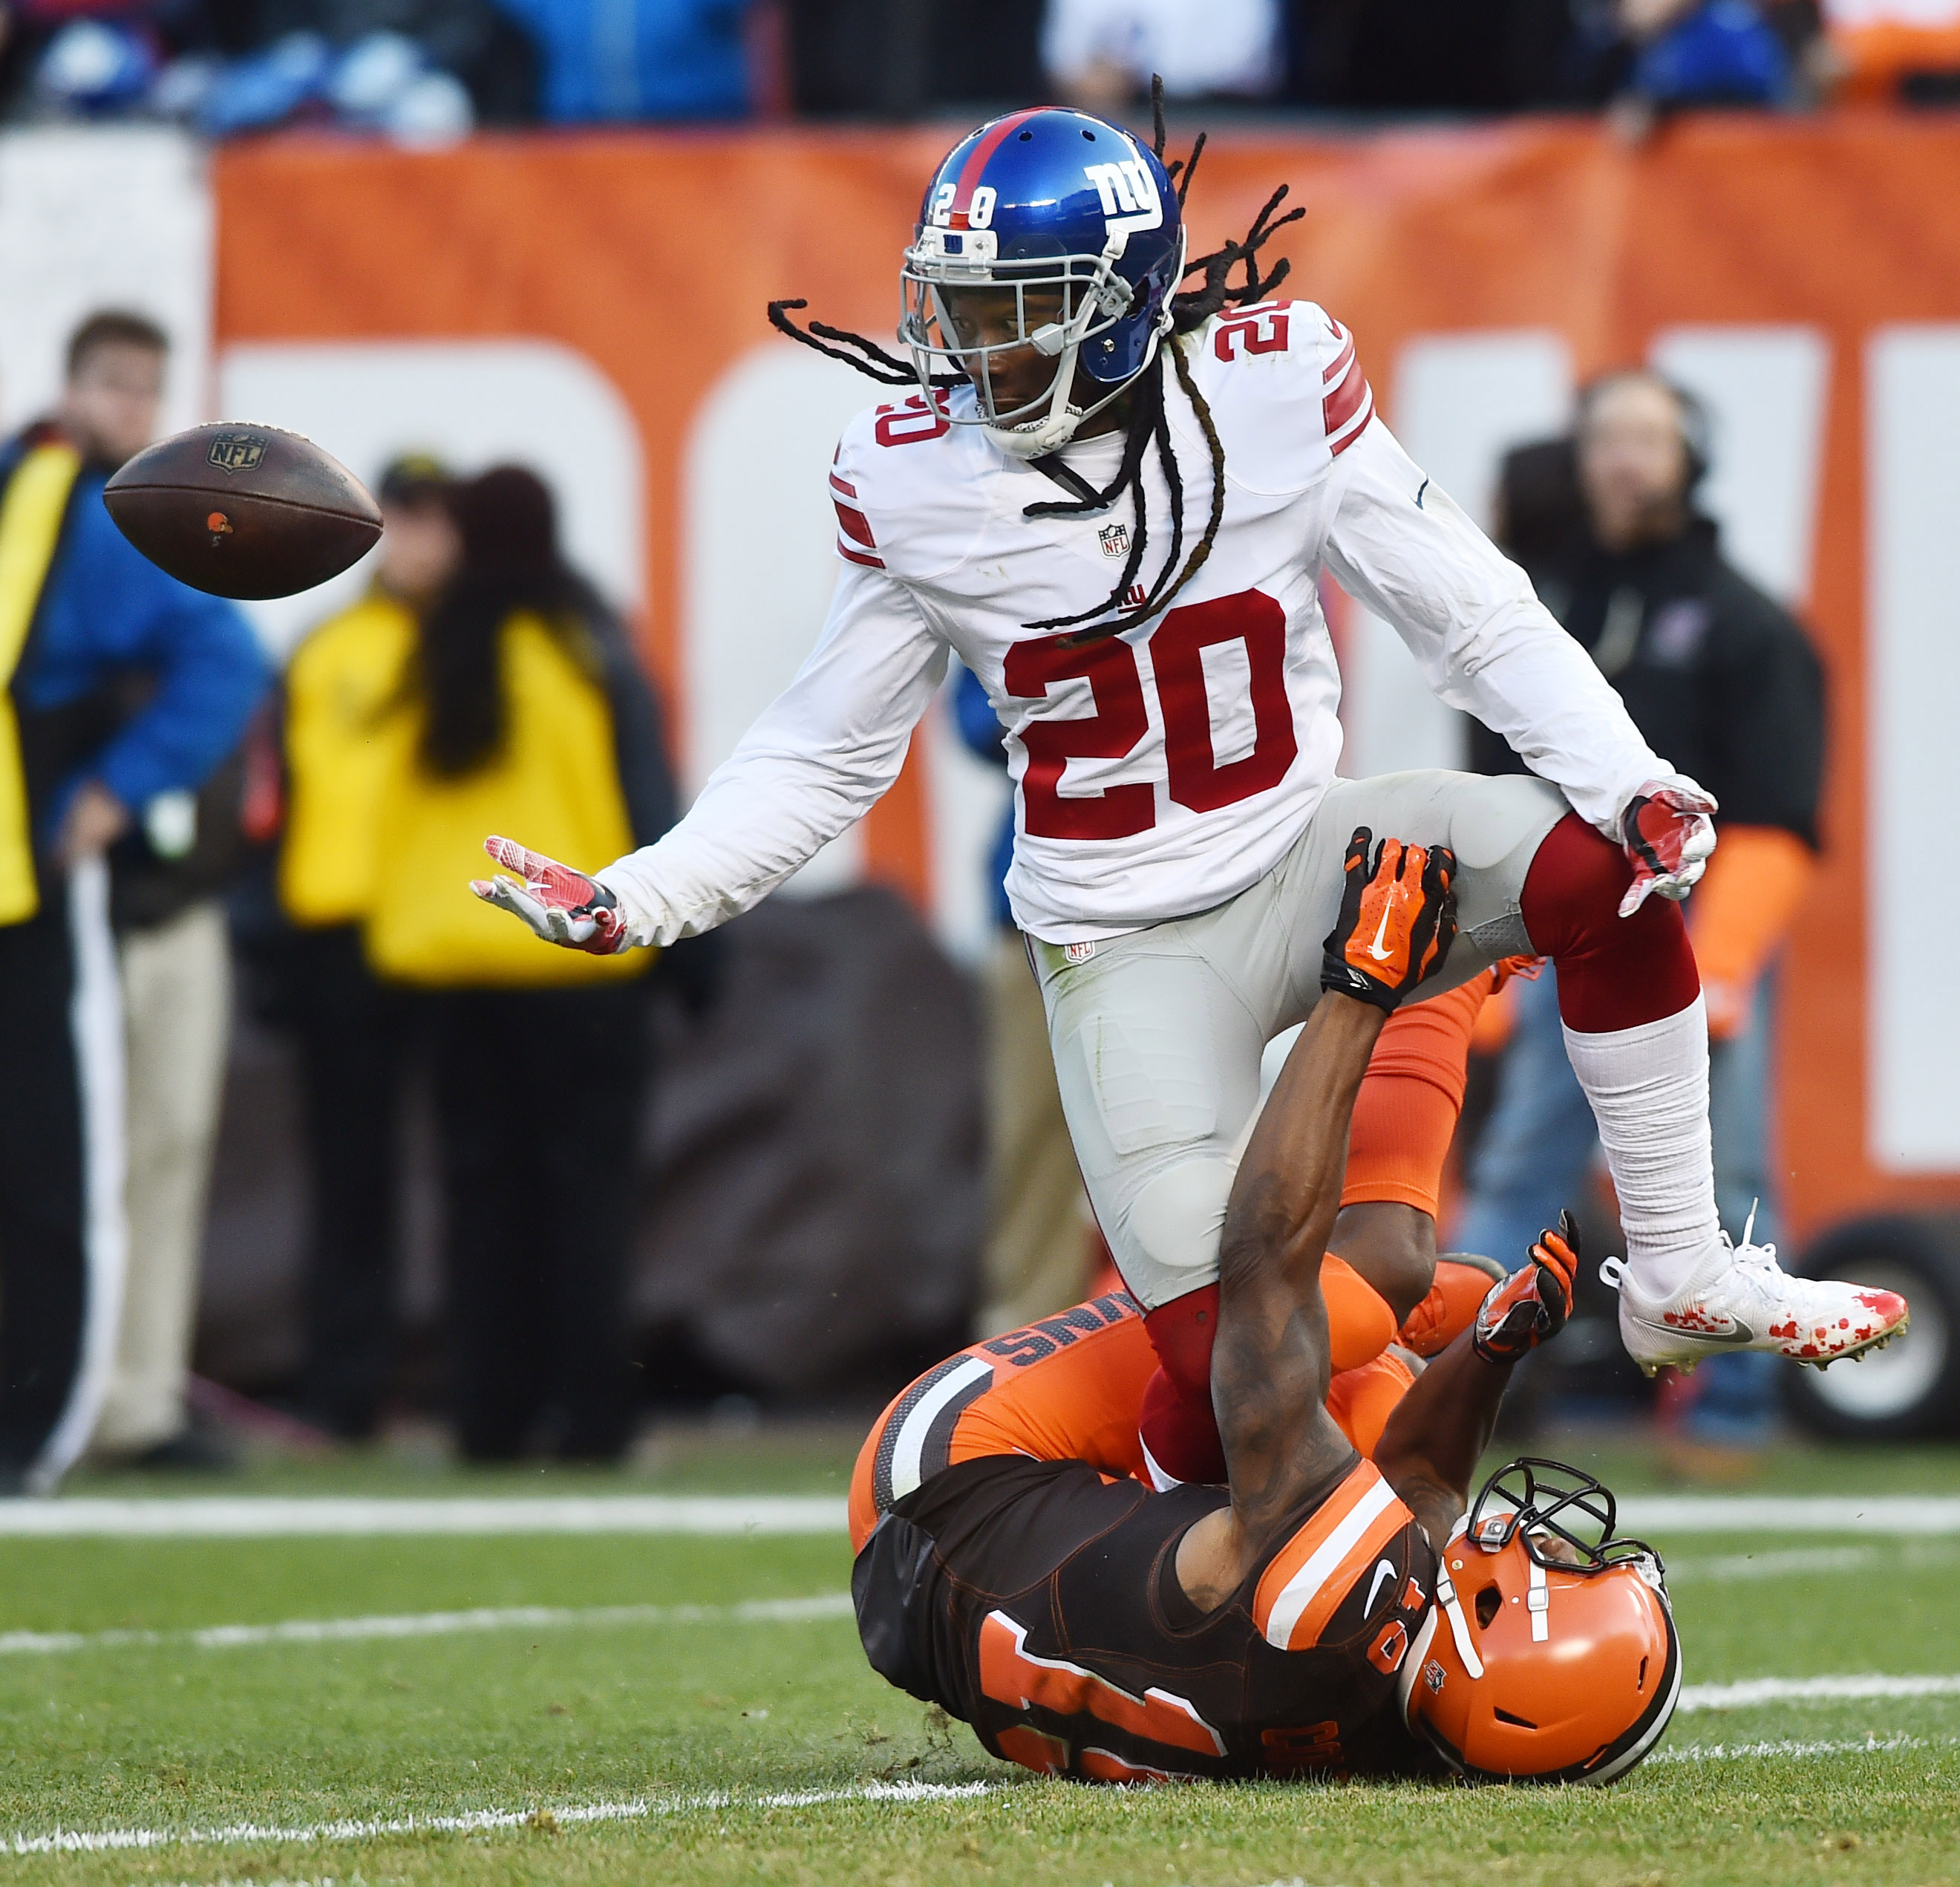 9709363-nfl-new-york-giants-at-cleveland-browns